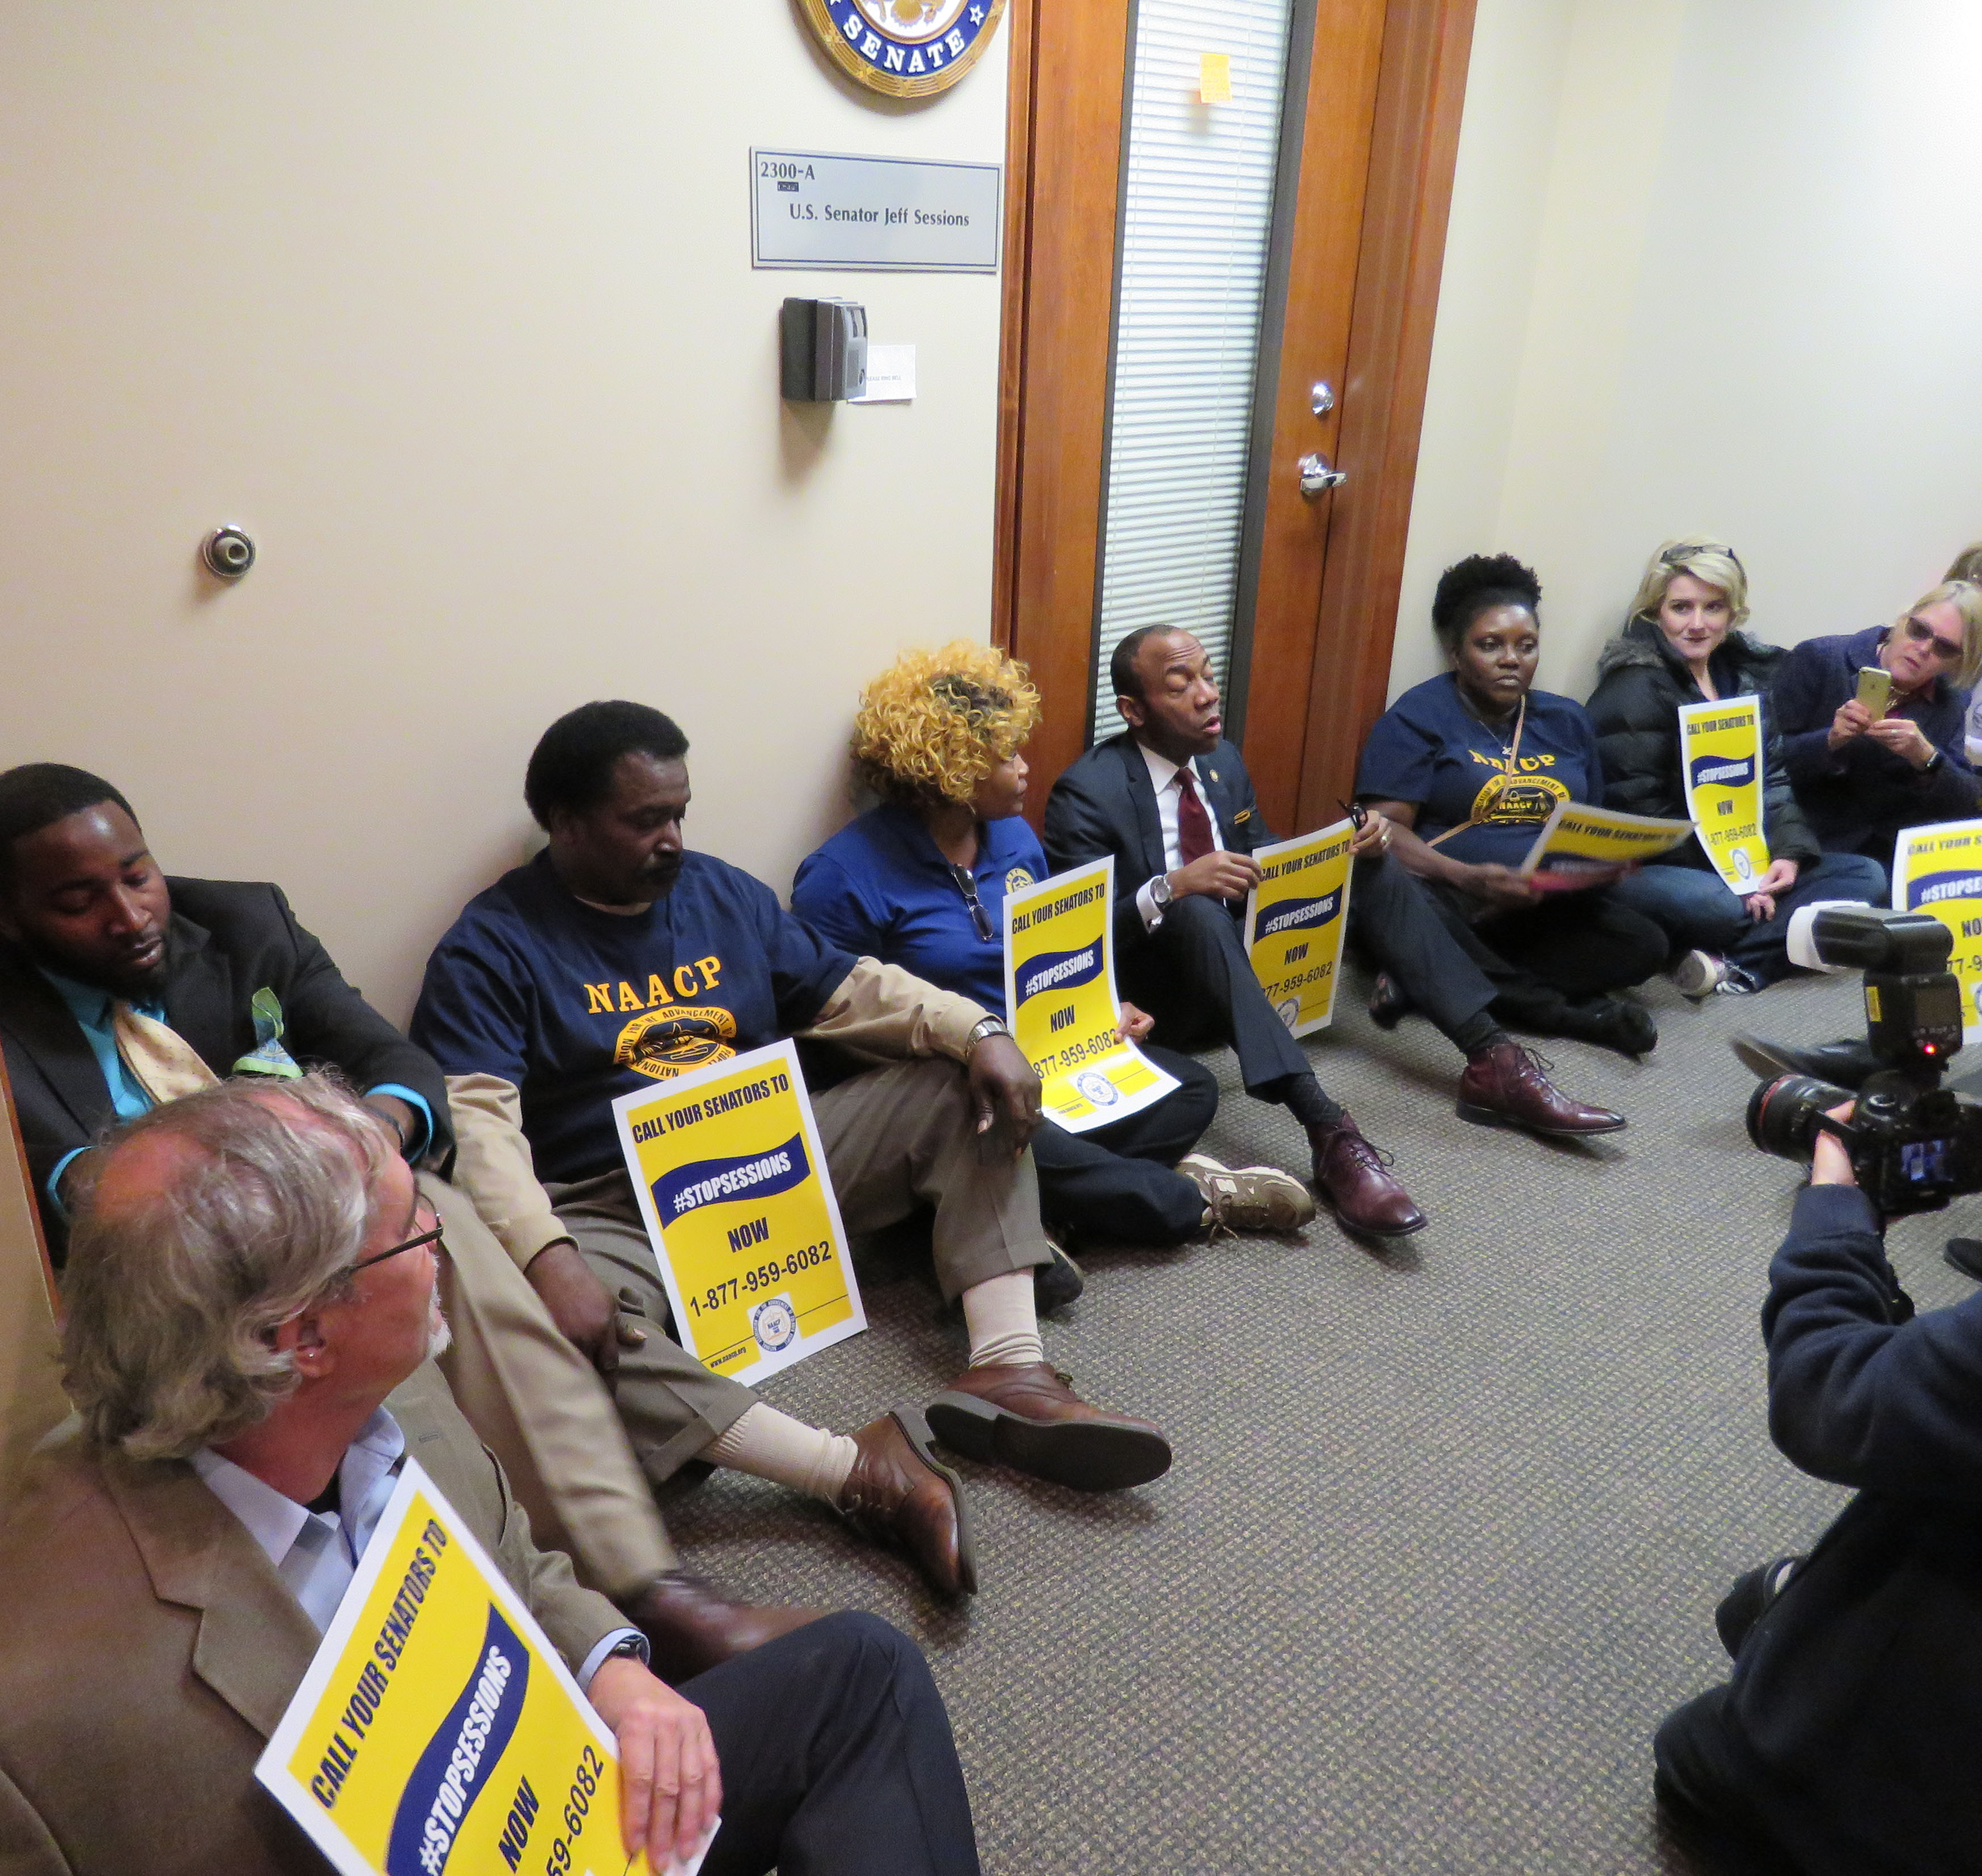 NAACP_sit-in1a